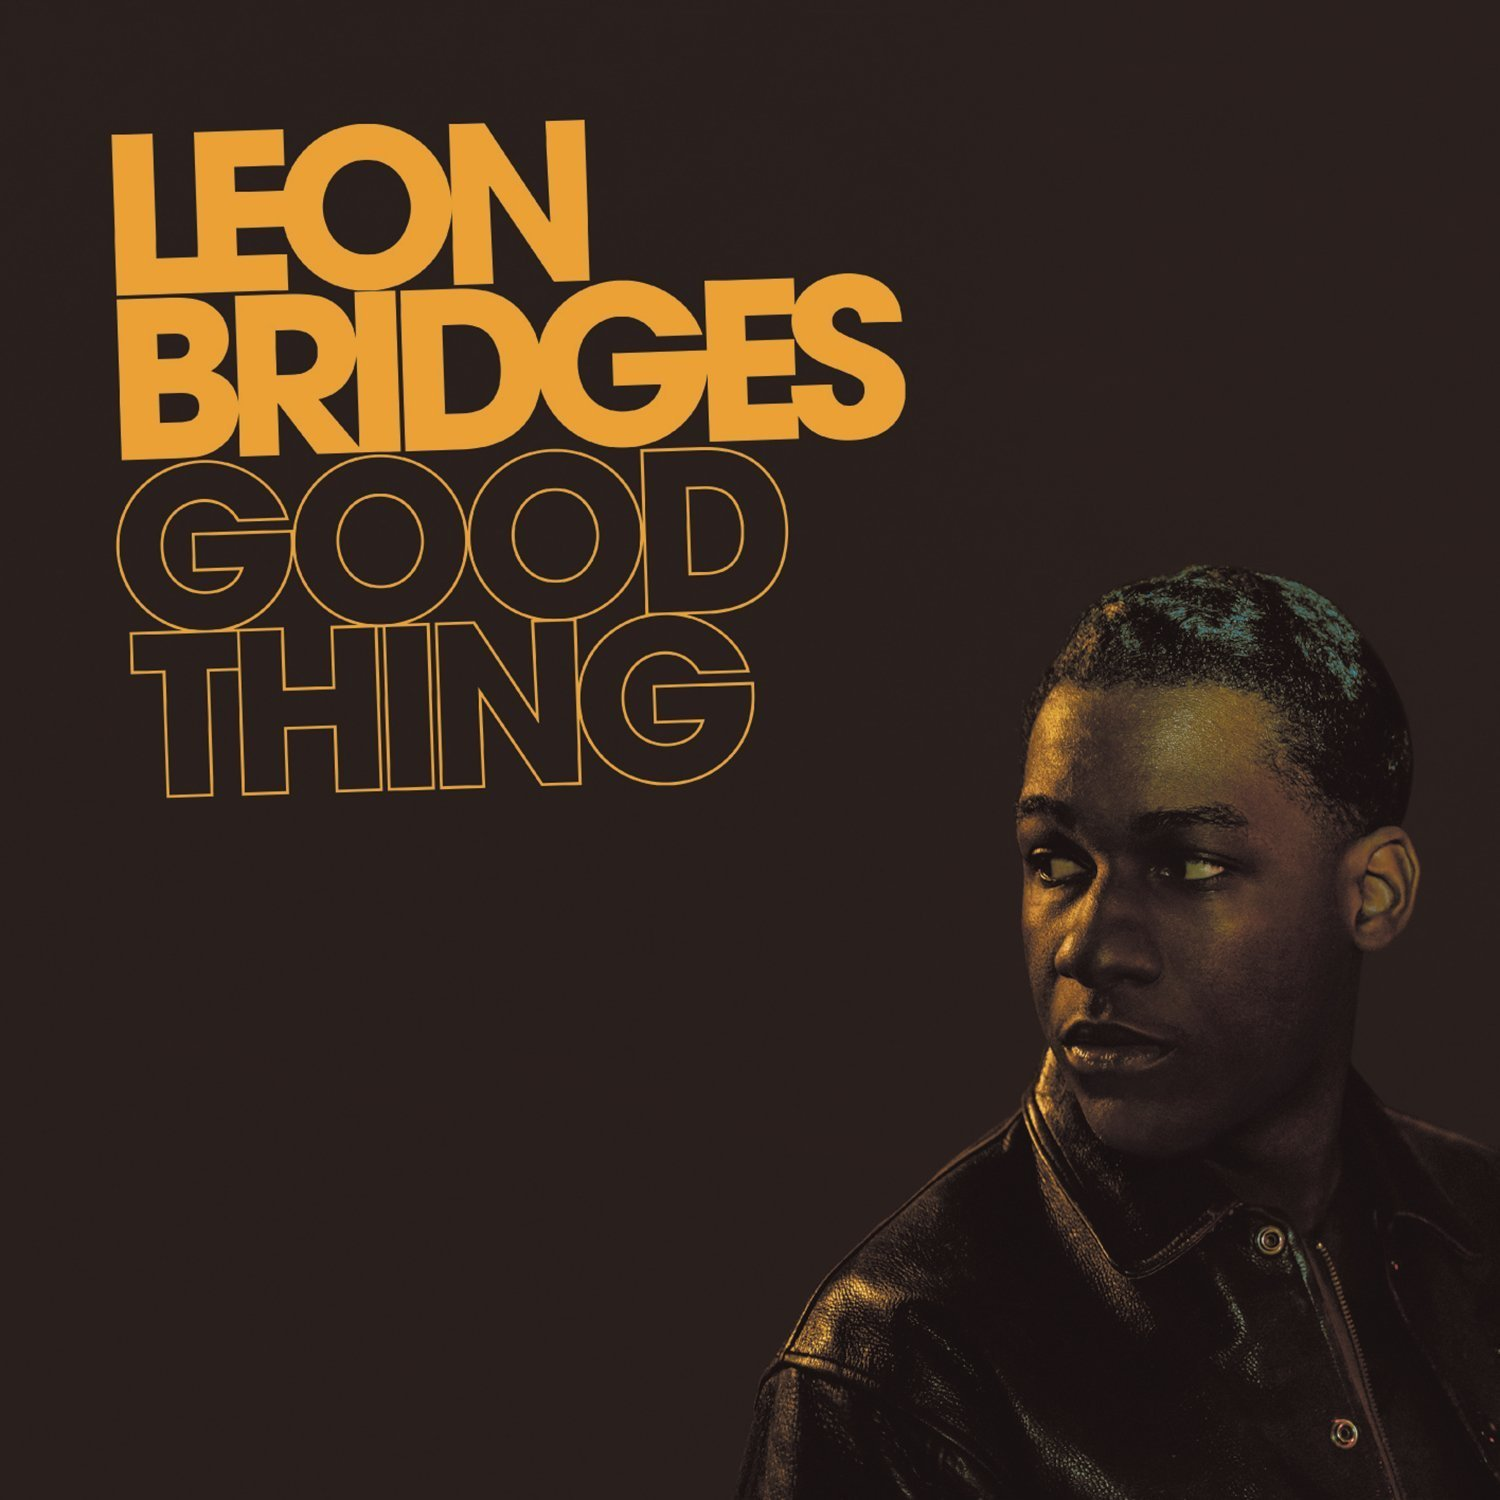 LEON BRIDGES He's a man of few words on this video, but every one of them is a good thing.